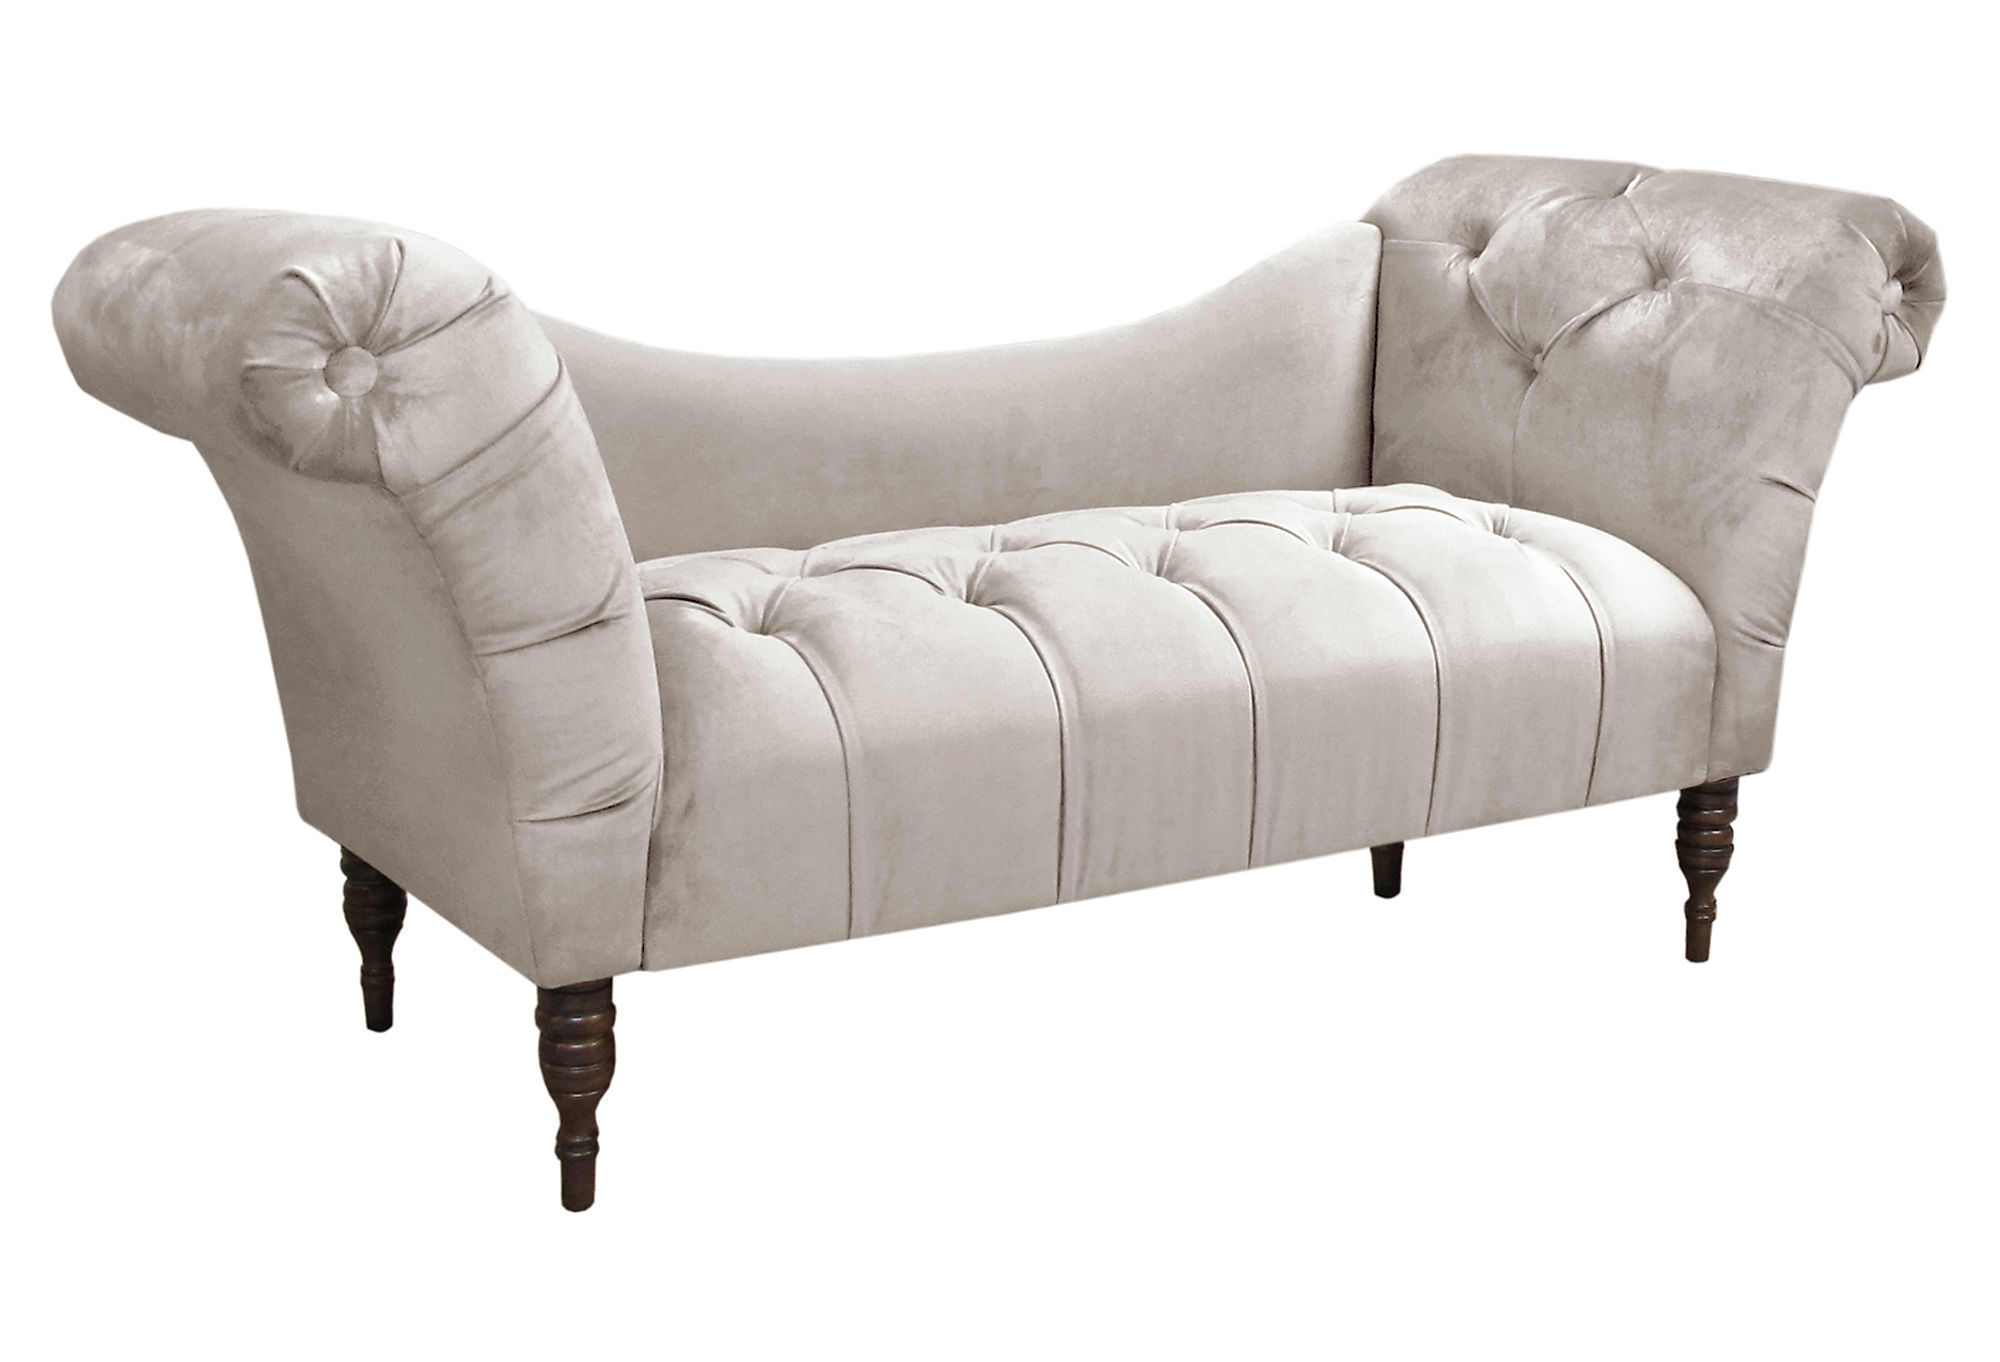 Lillian tufted chaise talc charleston charm one kings for Cameron tufted chaise talc